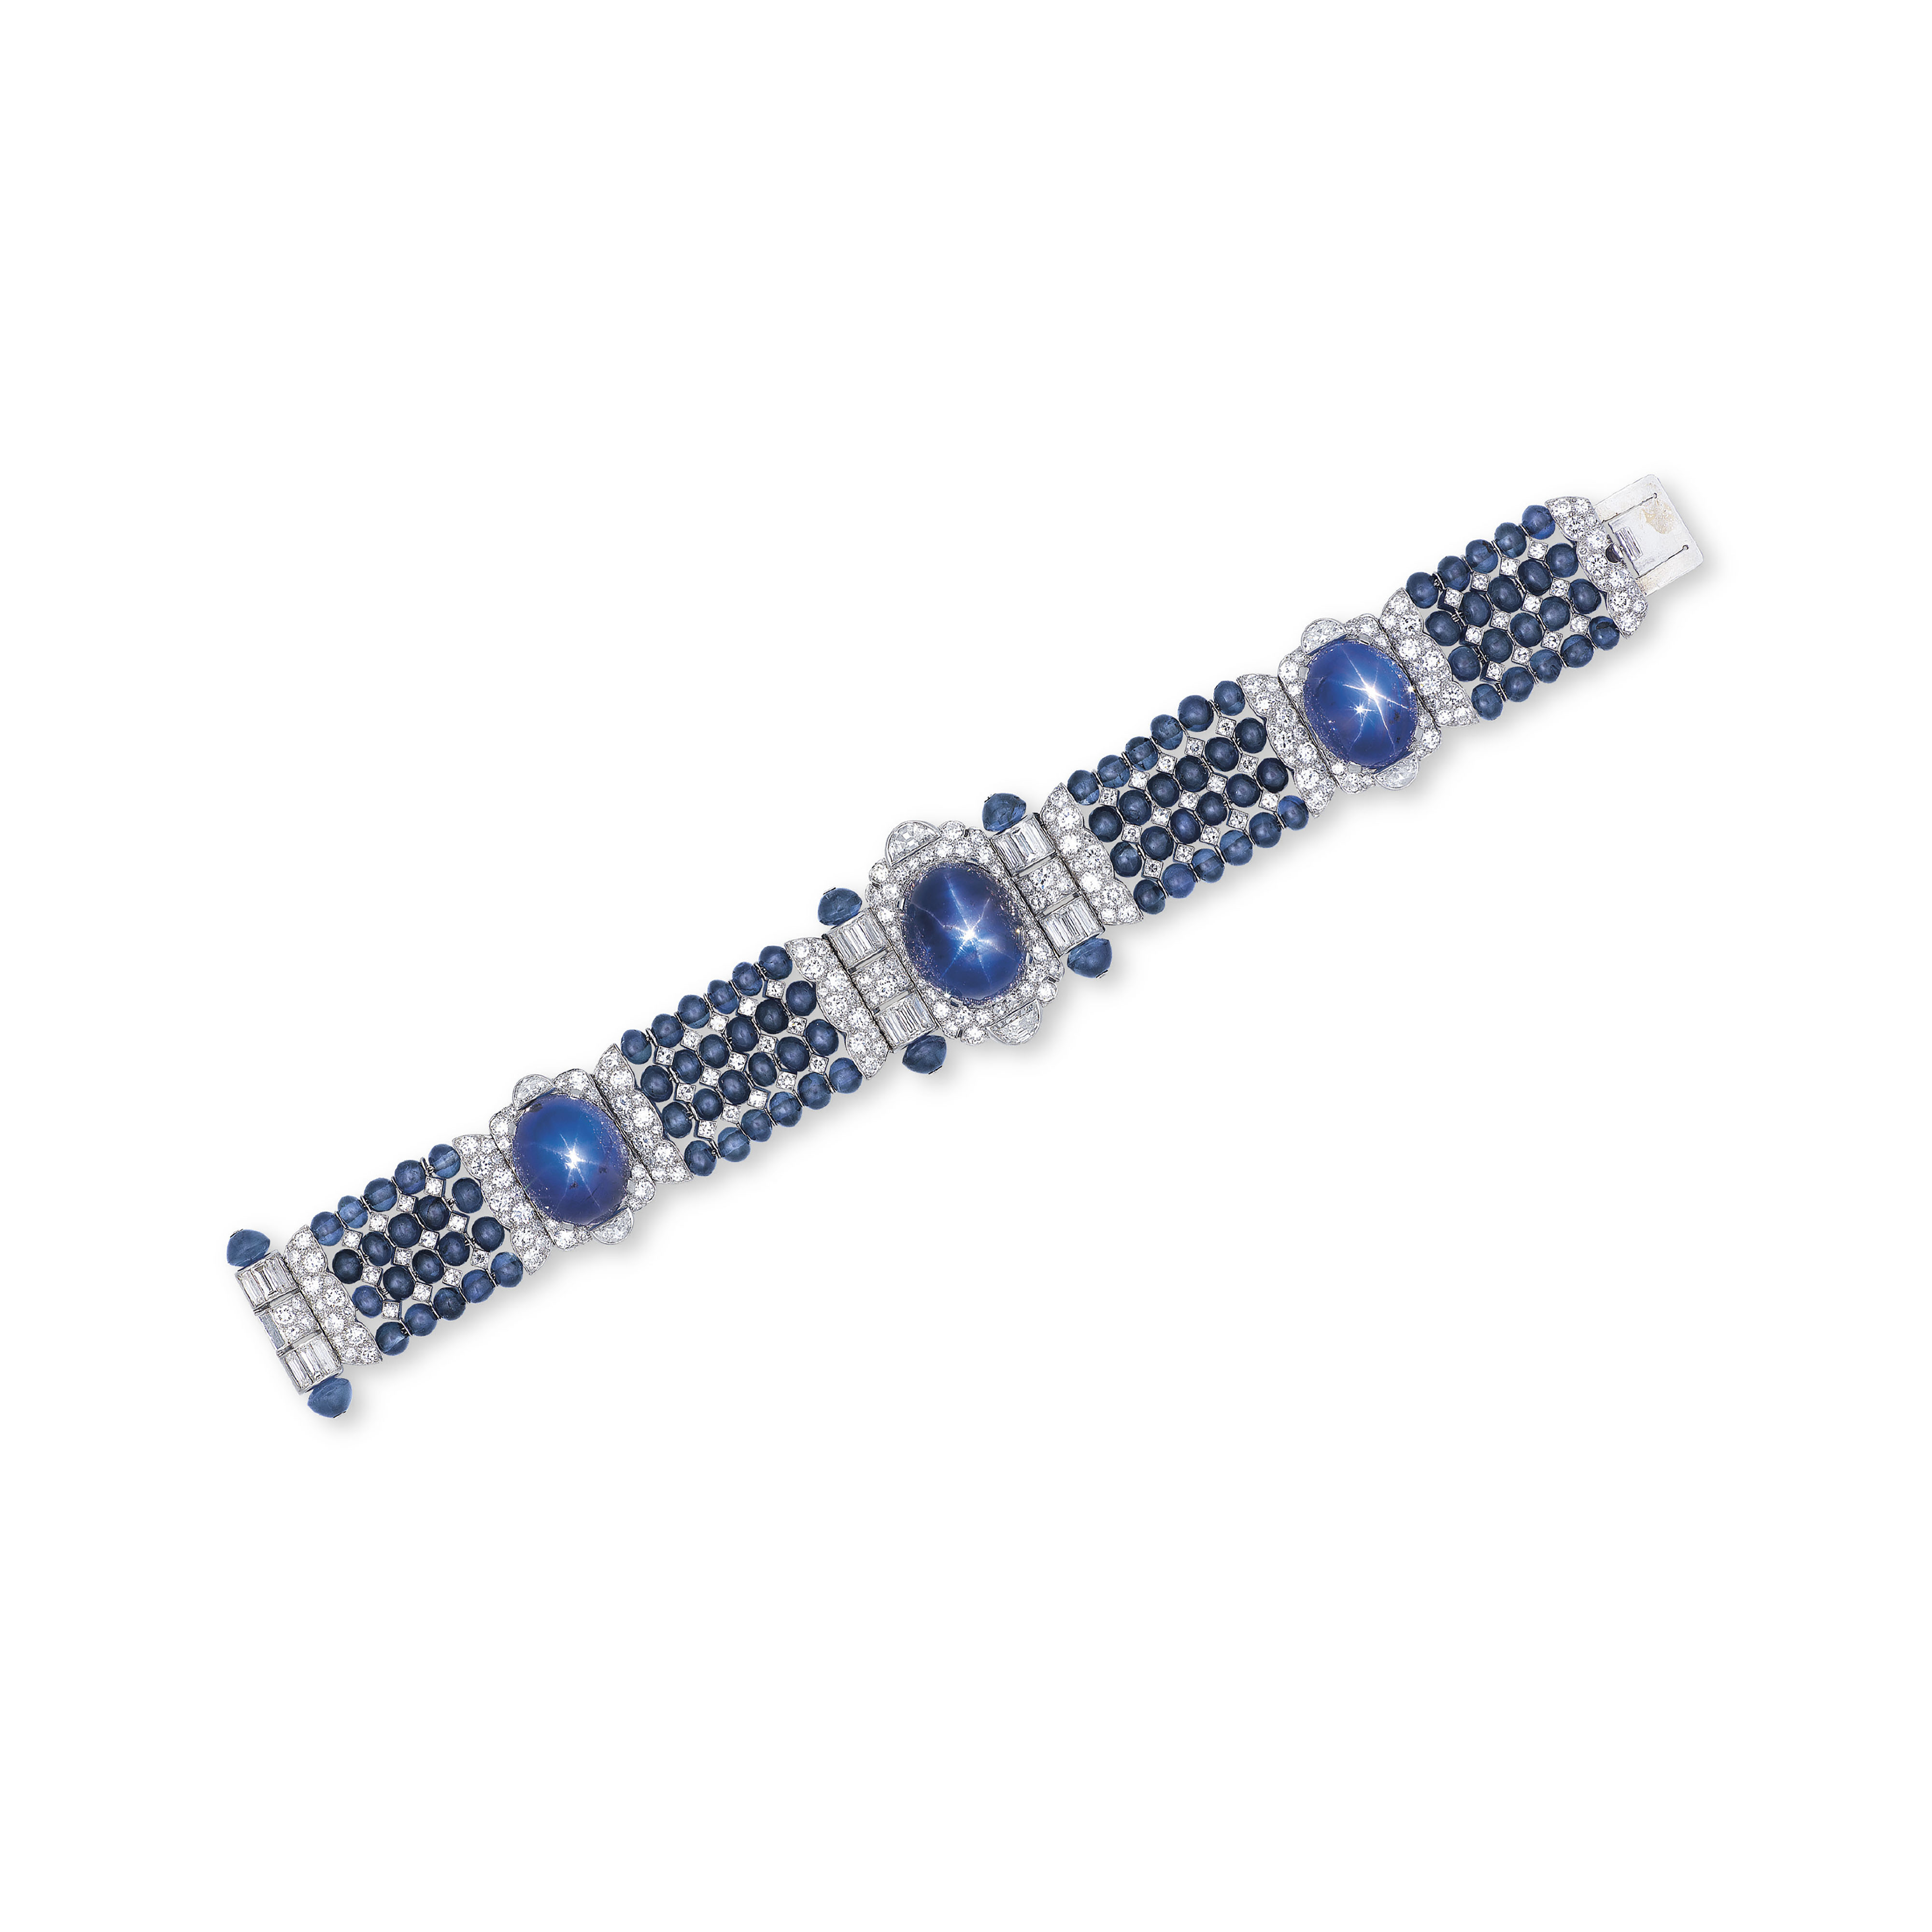 A STAR SAPPHIRE, SAPPHIRE AND